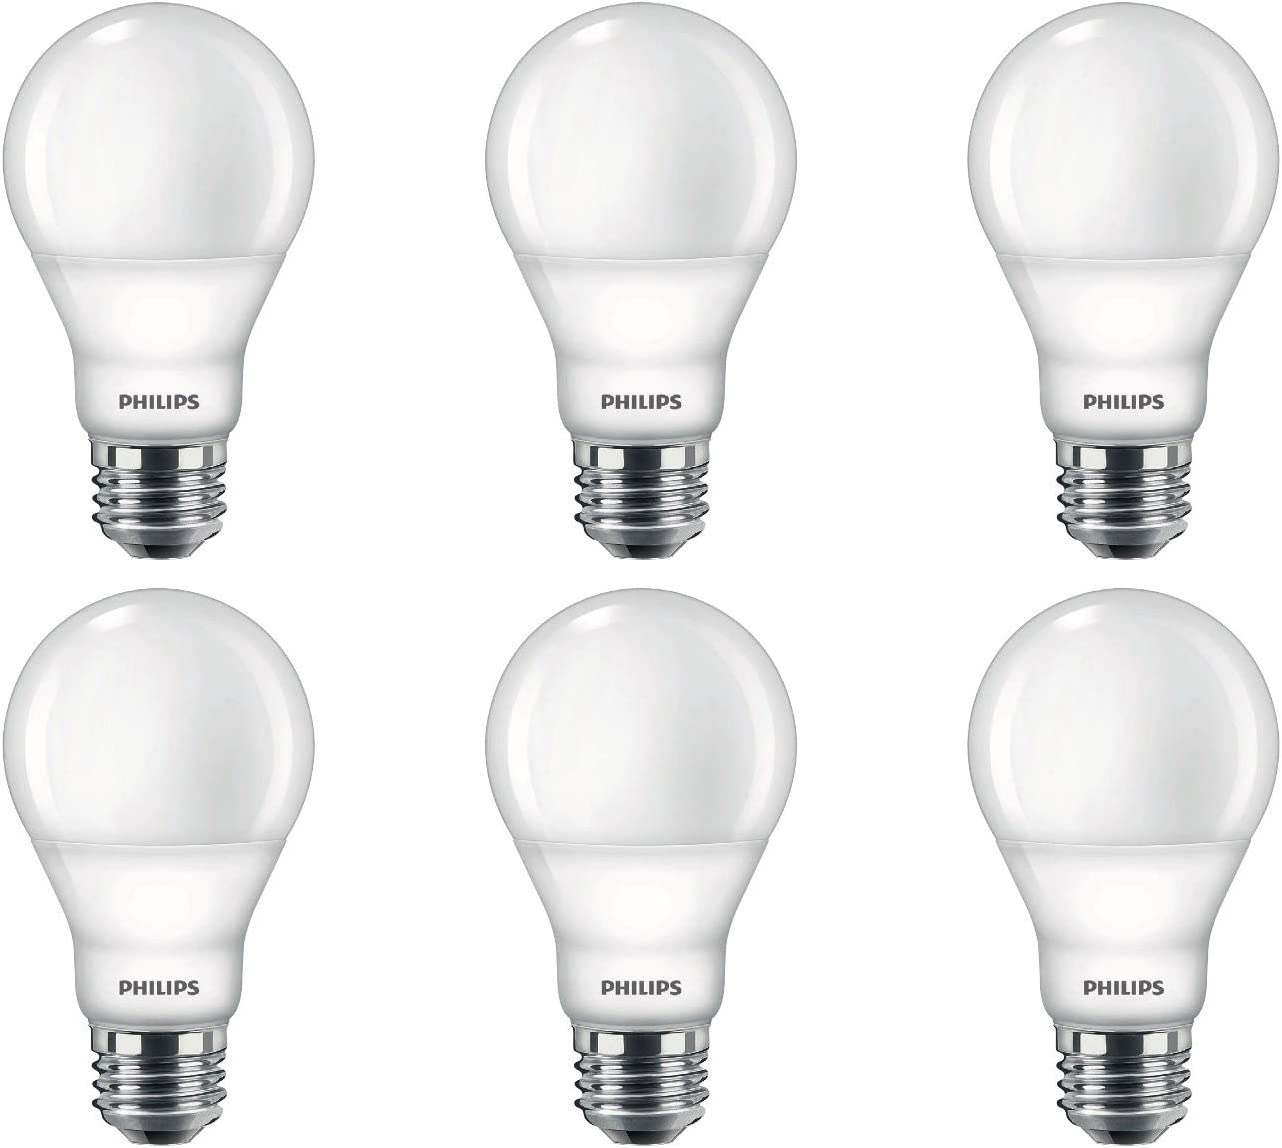 Philips LED 479444 Dimmable A19 Light Bulb with Warm Glow Effect 800-Lumen, 2200-2700 Kelvin, 8.8 Watt, E26 Base, Frosted, Soft White, 6-Pack